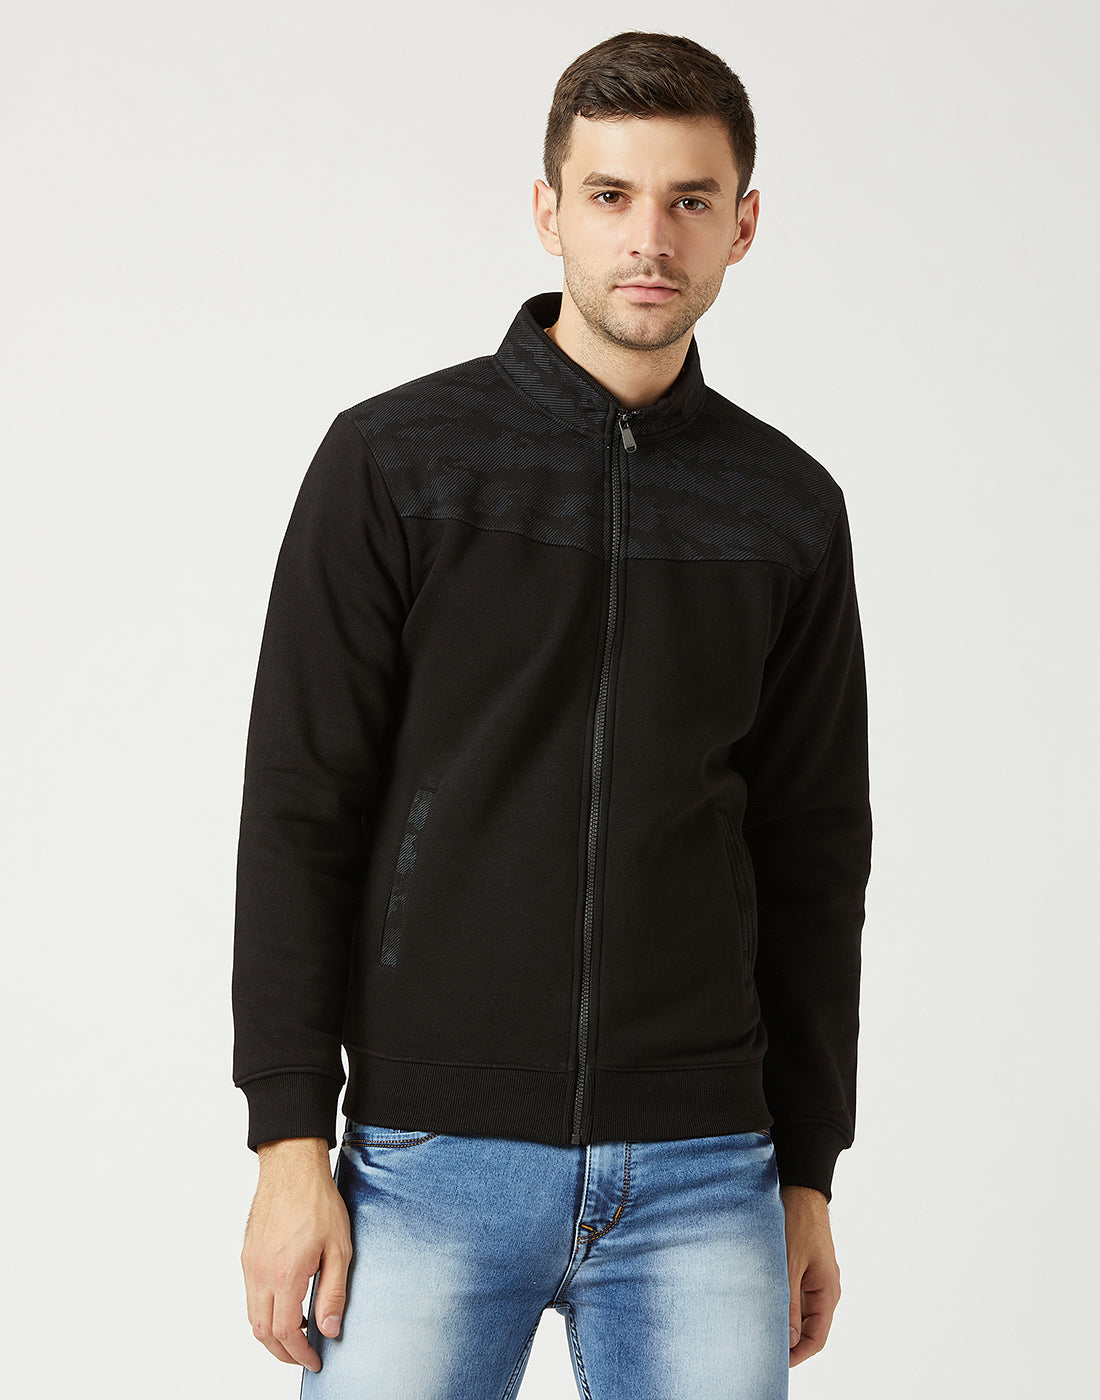 Octave Men Black Solid Sweatshirt